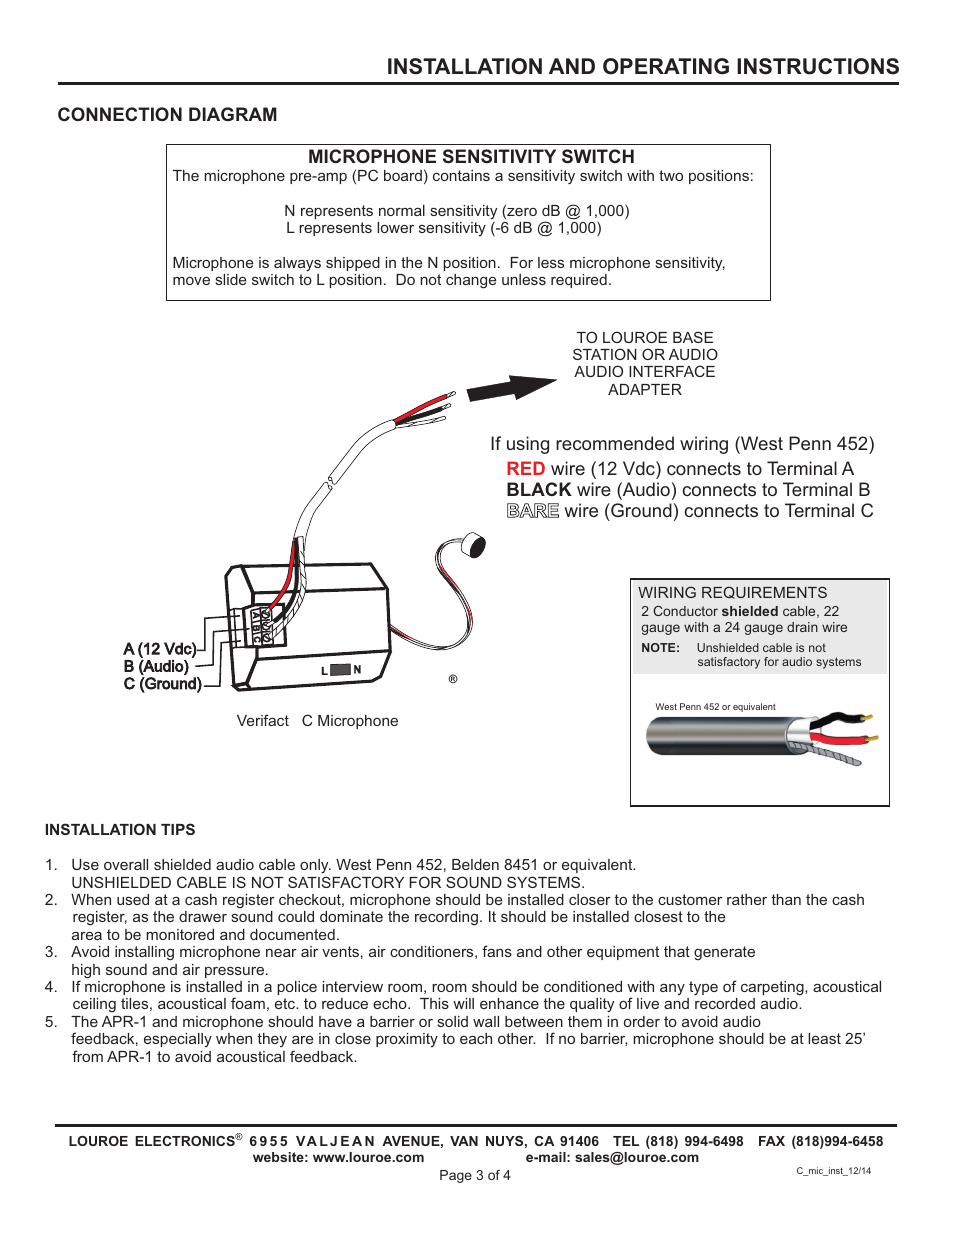 Installation And Operating Instructions Connection Diagram Louroe Wiring For Slide Switch Electronics Le 072 User Manual Page 3 4